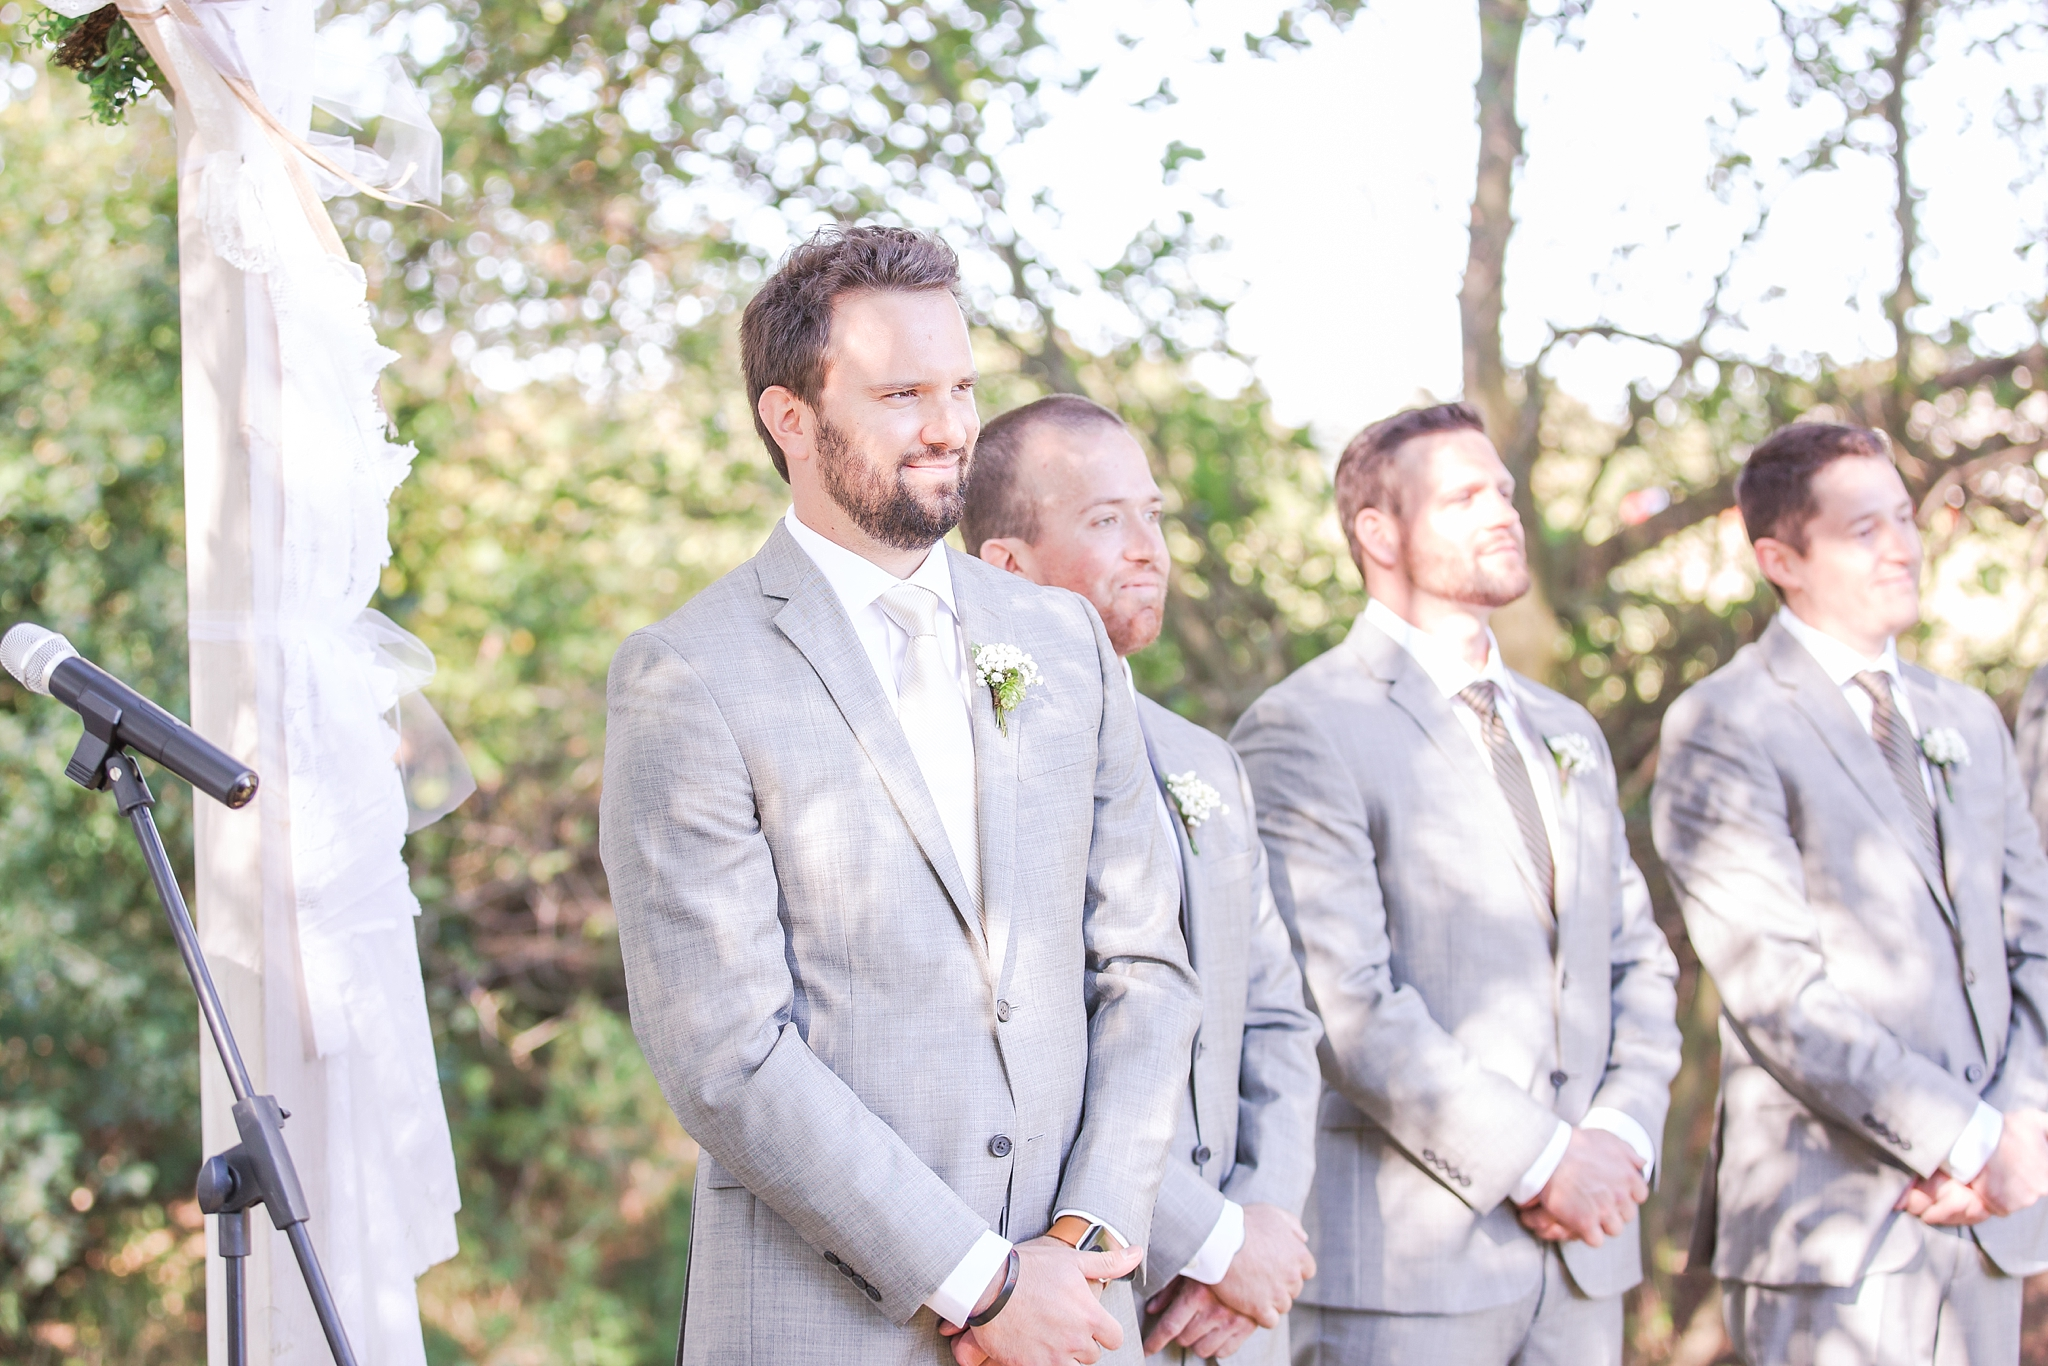 natural-rustic-wedding-photos-at-frutig-farms-the-valley-in-ann-arbor-michigan-by-courtney-carolyn-photography_0056.jpg